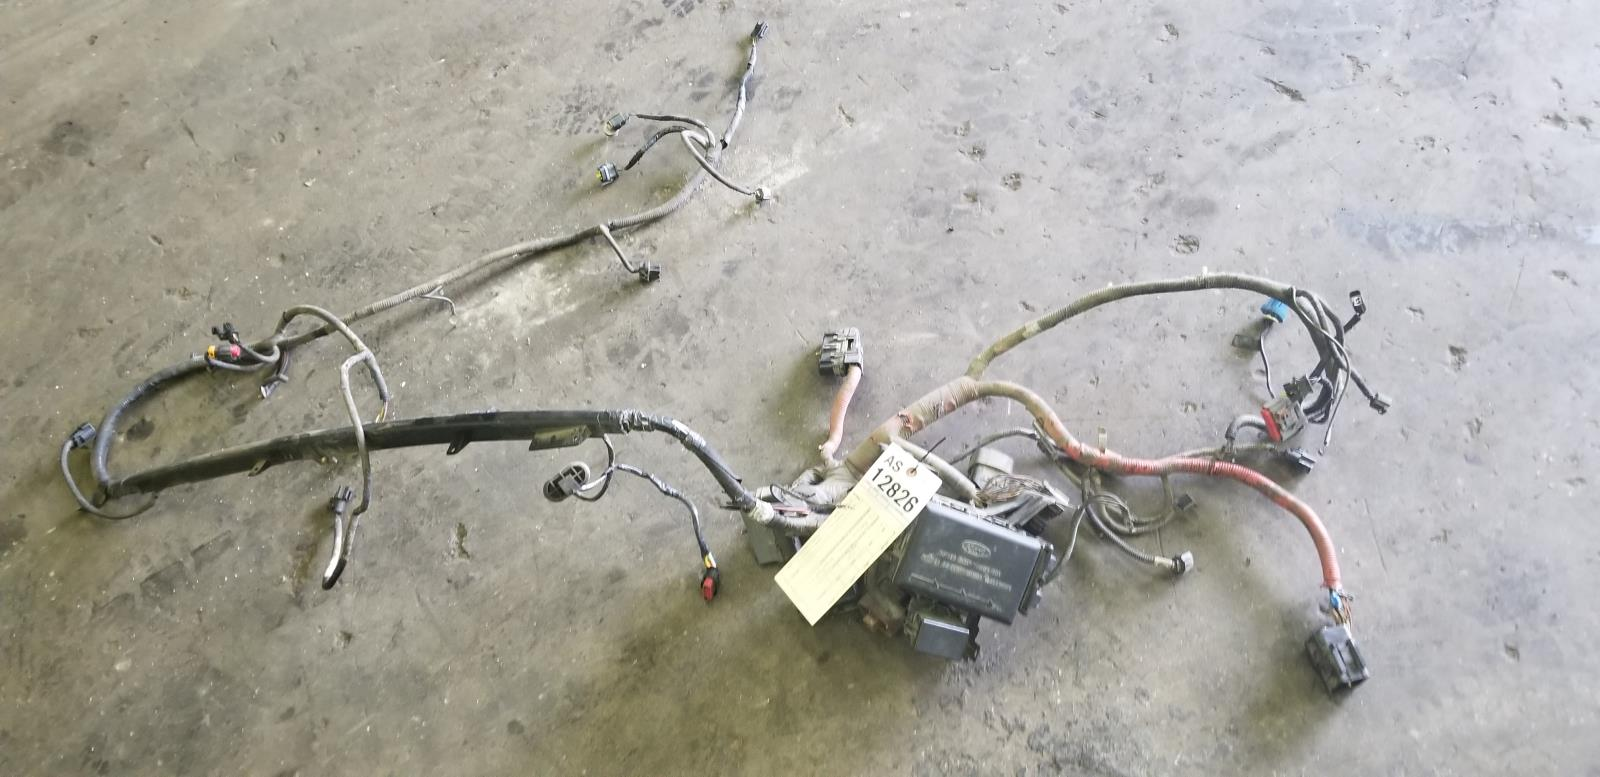 1999 Ford F250 F350 73l Engine Compartment Wiring Harness As12826 F 250 Wire Part Will Be Shipped Within 2 Business Days And A Tracking Number Uploaded To Ebay Later